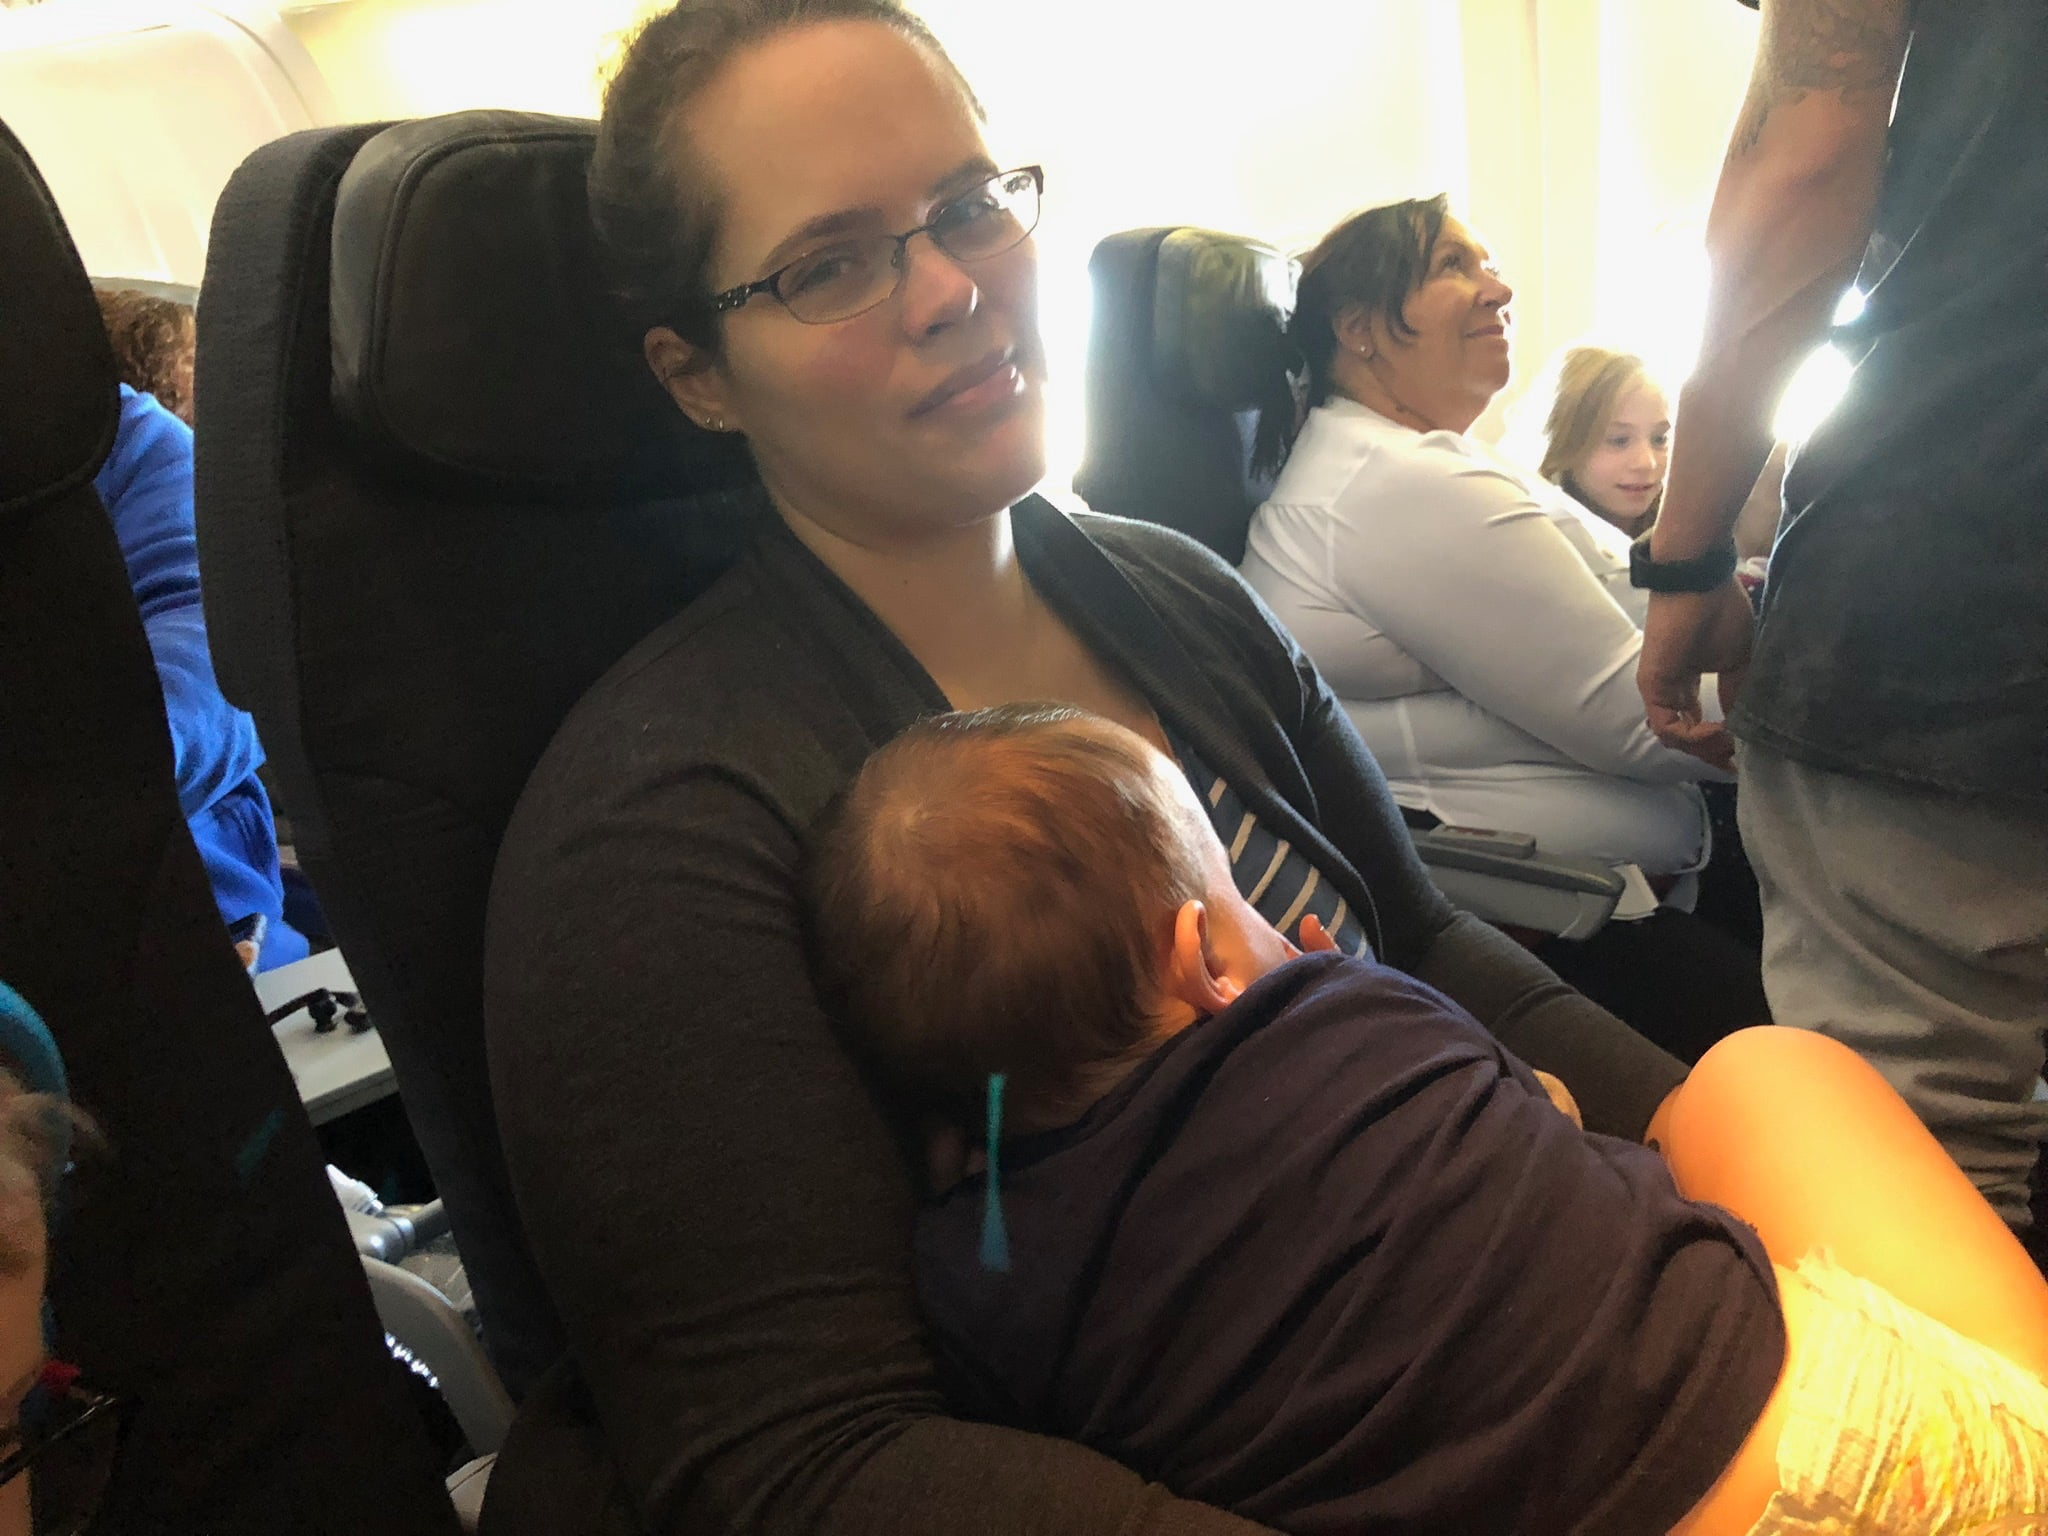 Mom and Toddler Snuggle on Airplane